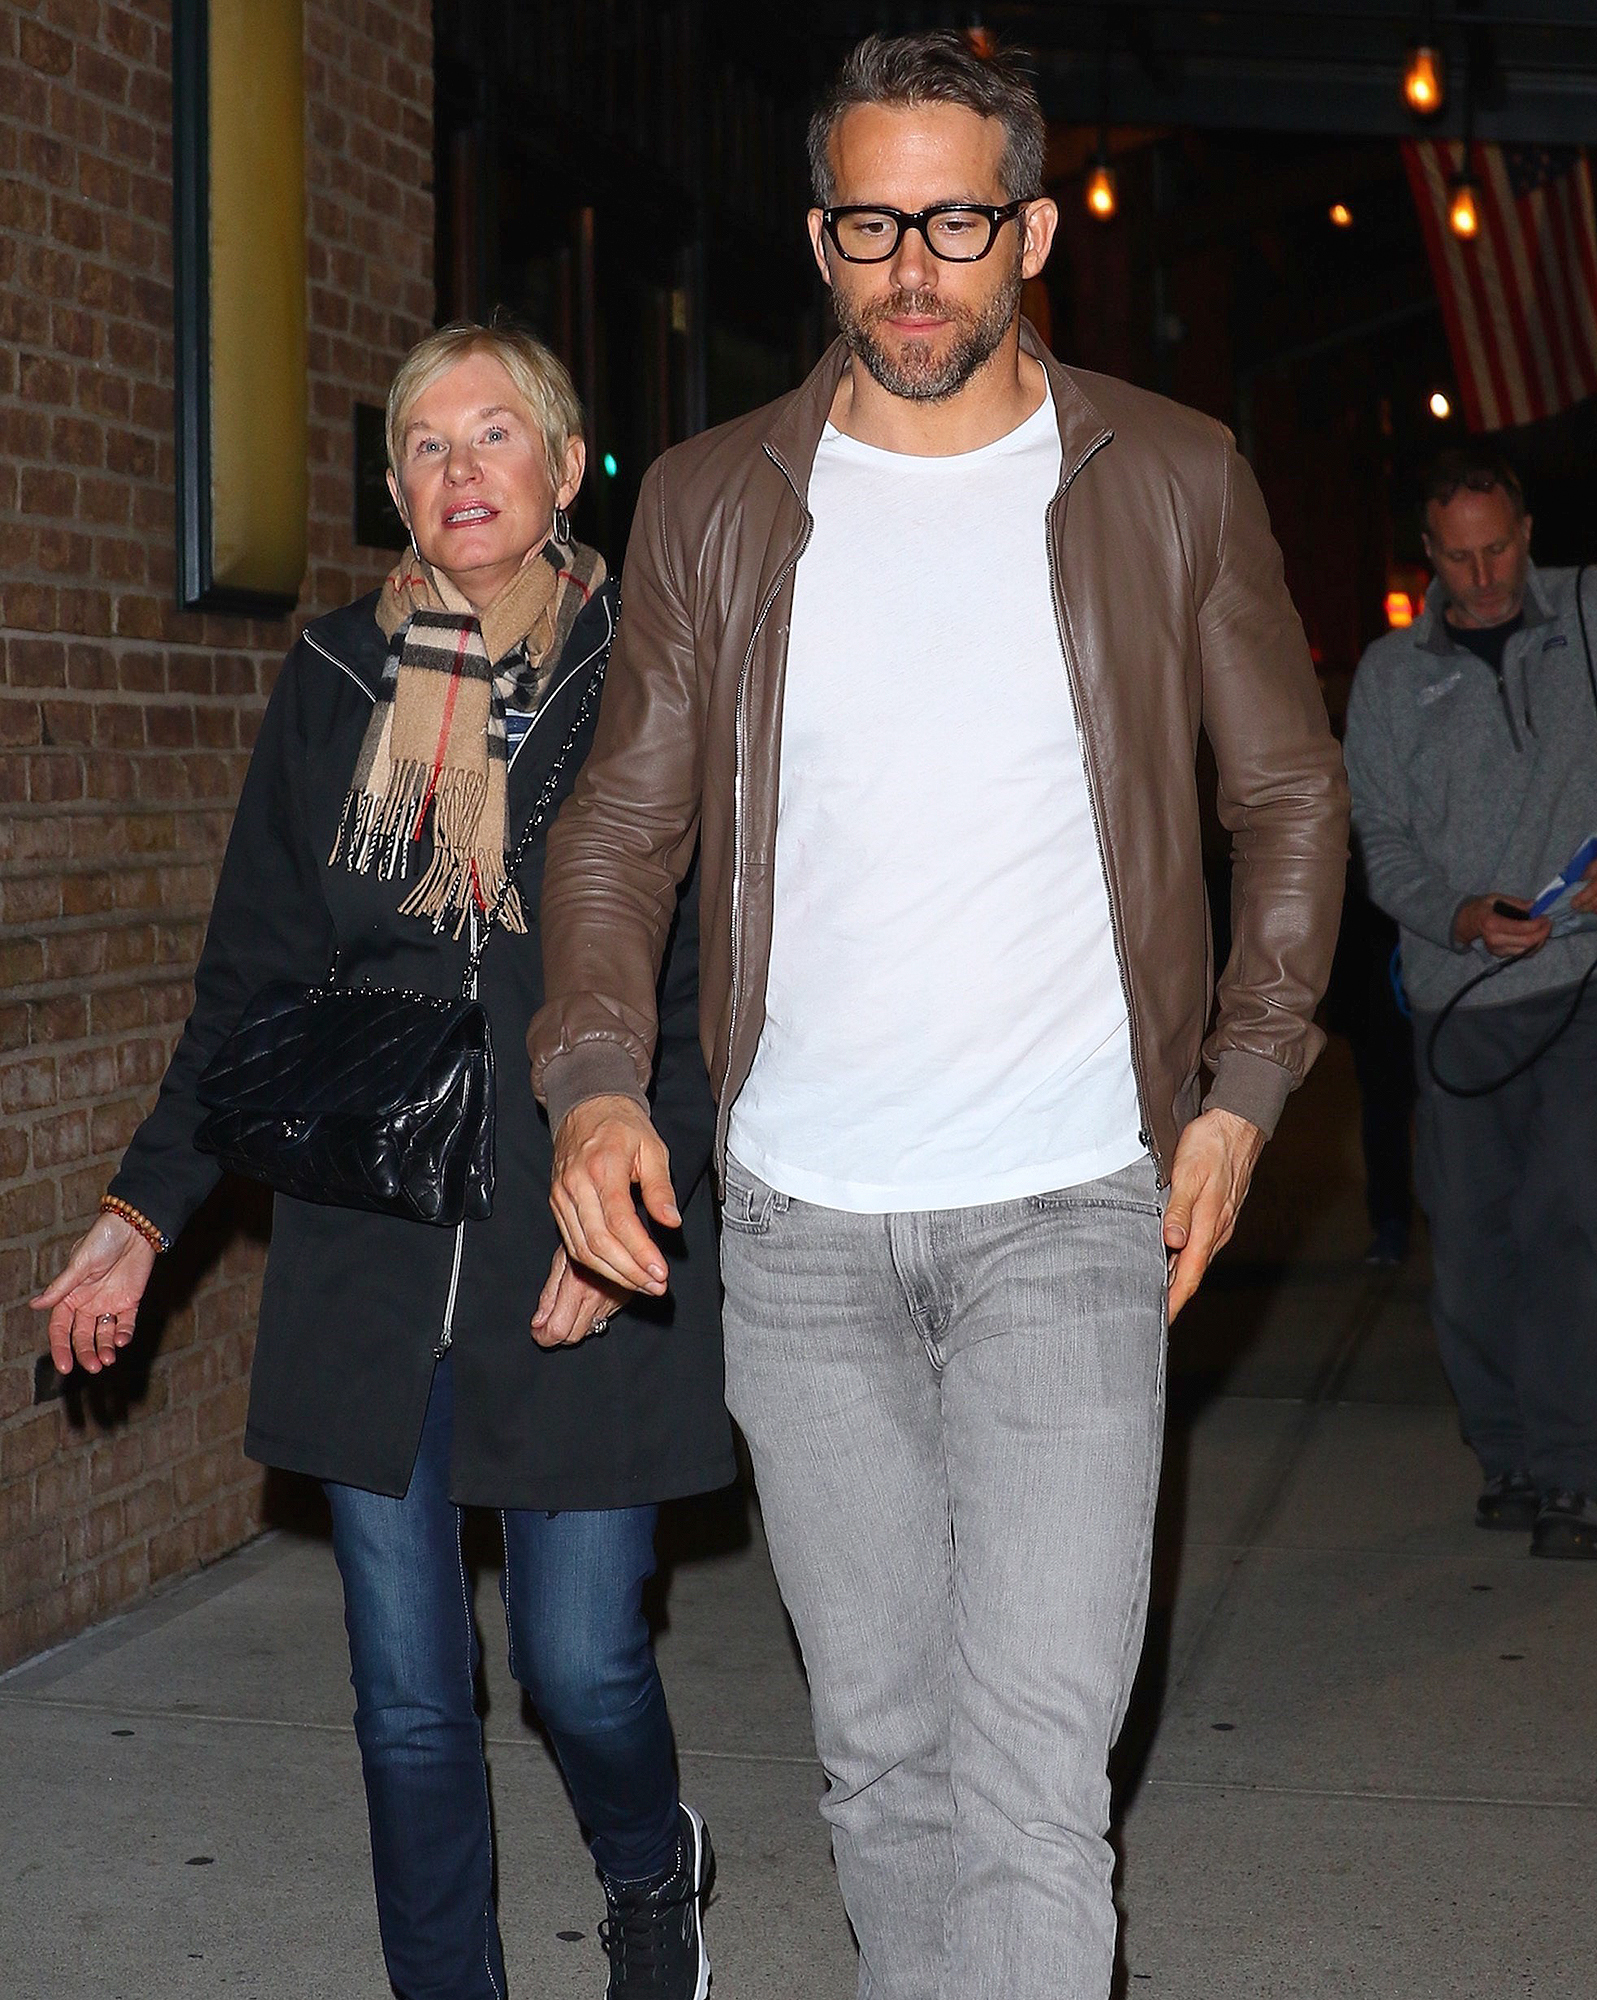 *EXCLUSIVE* Ryan Reynolds goes for an evening stroll with his mom Tammy Reynolds